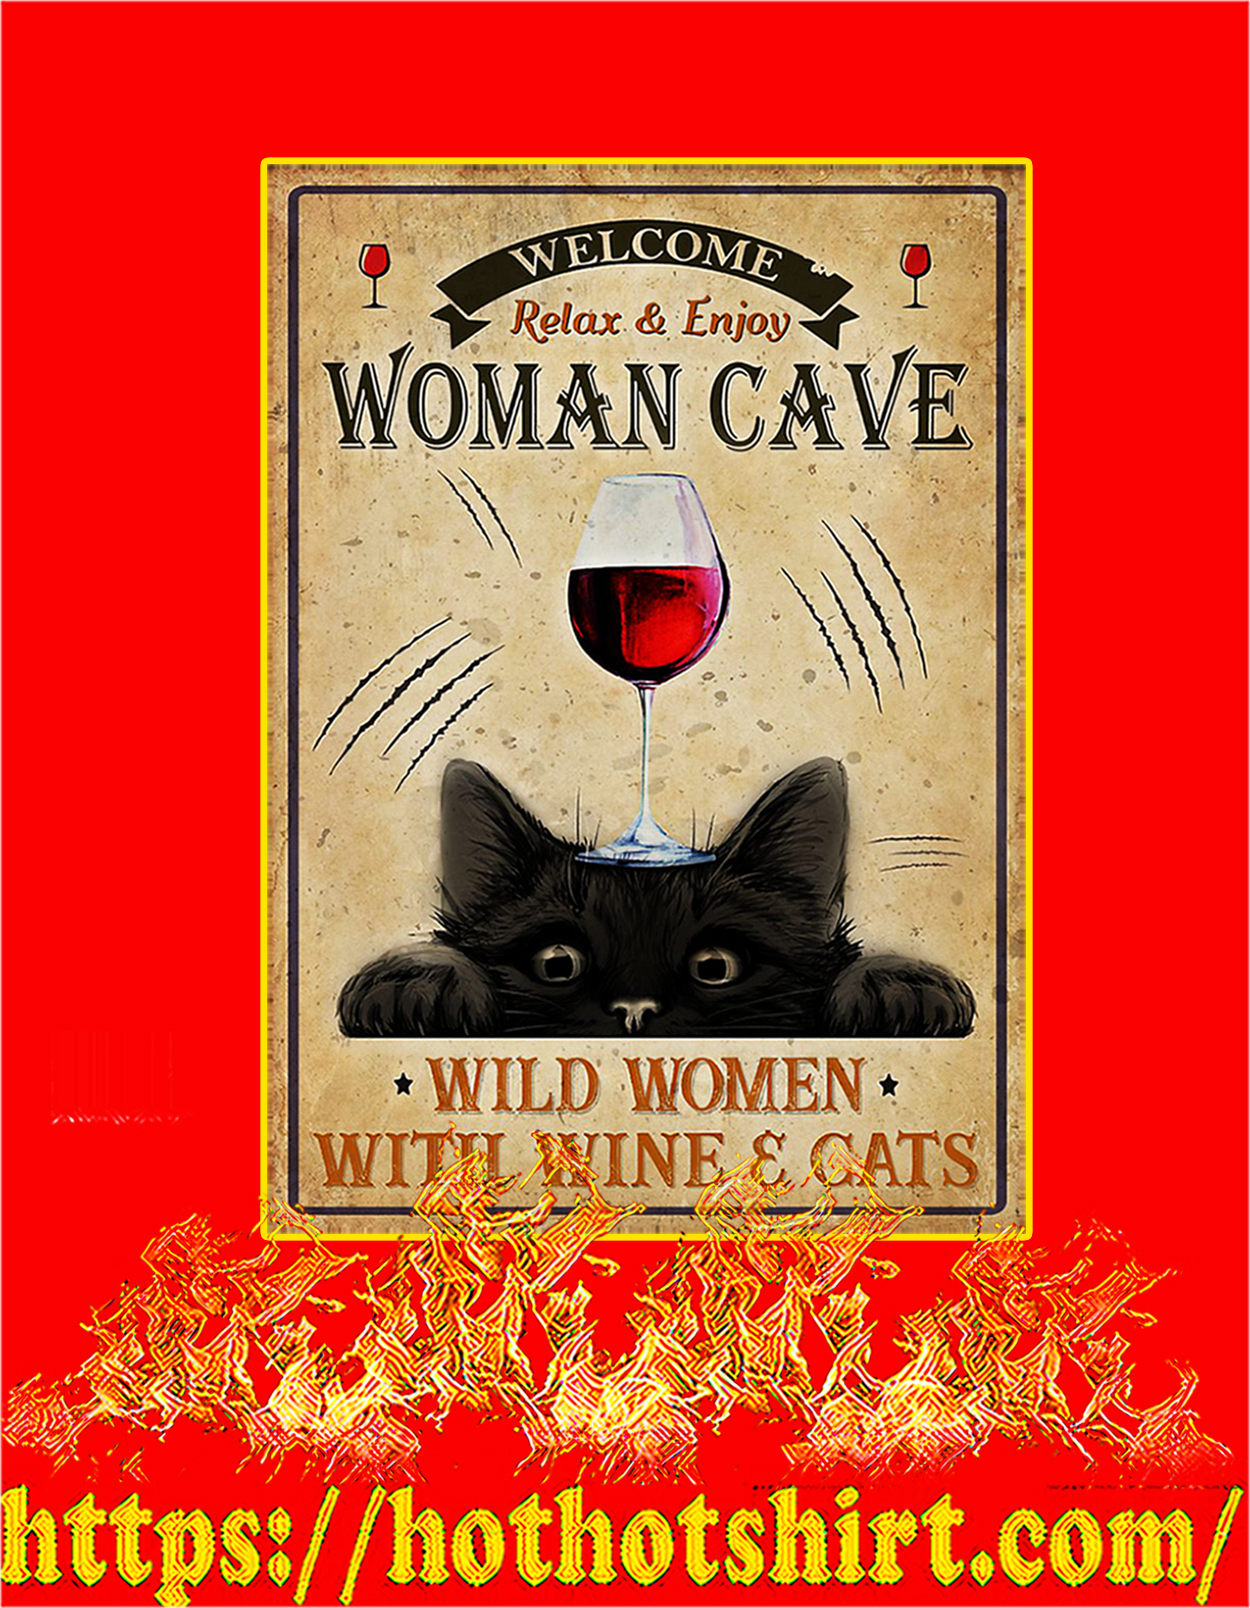 Wine and cats welcome relax and enjoy woman cave poster - A3